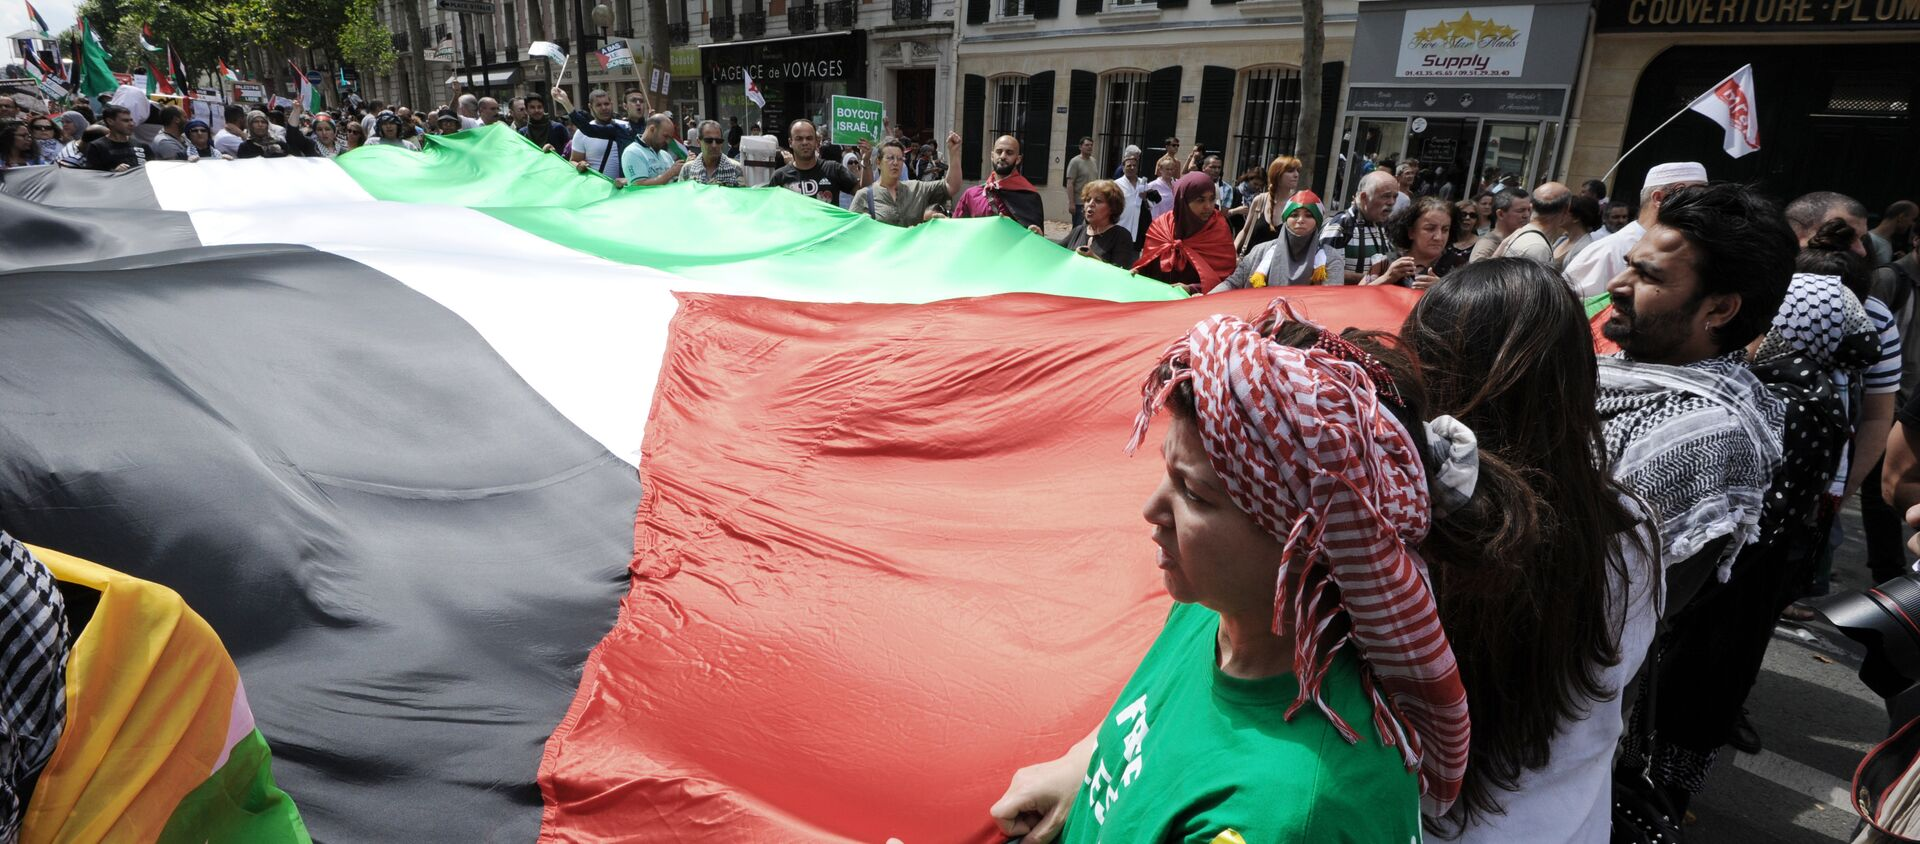 Protesters unfold a large Palestinian flag during a pro-Palestinian demonstration in Paris on August 2, 2014 - Sputnik International, 1920